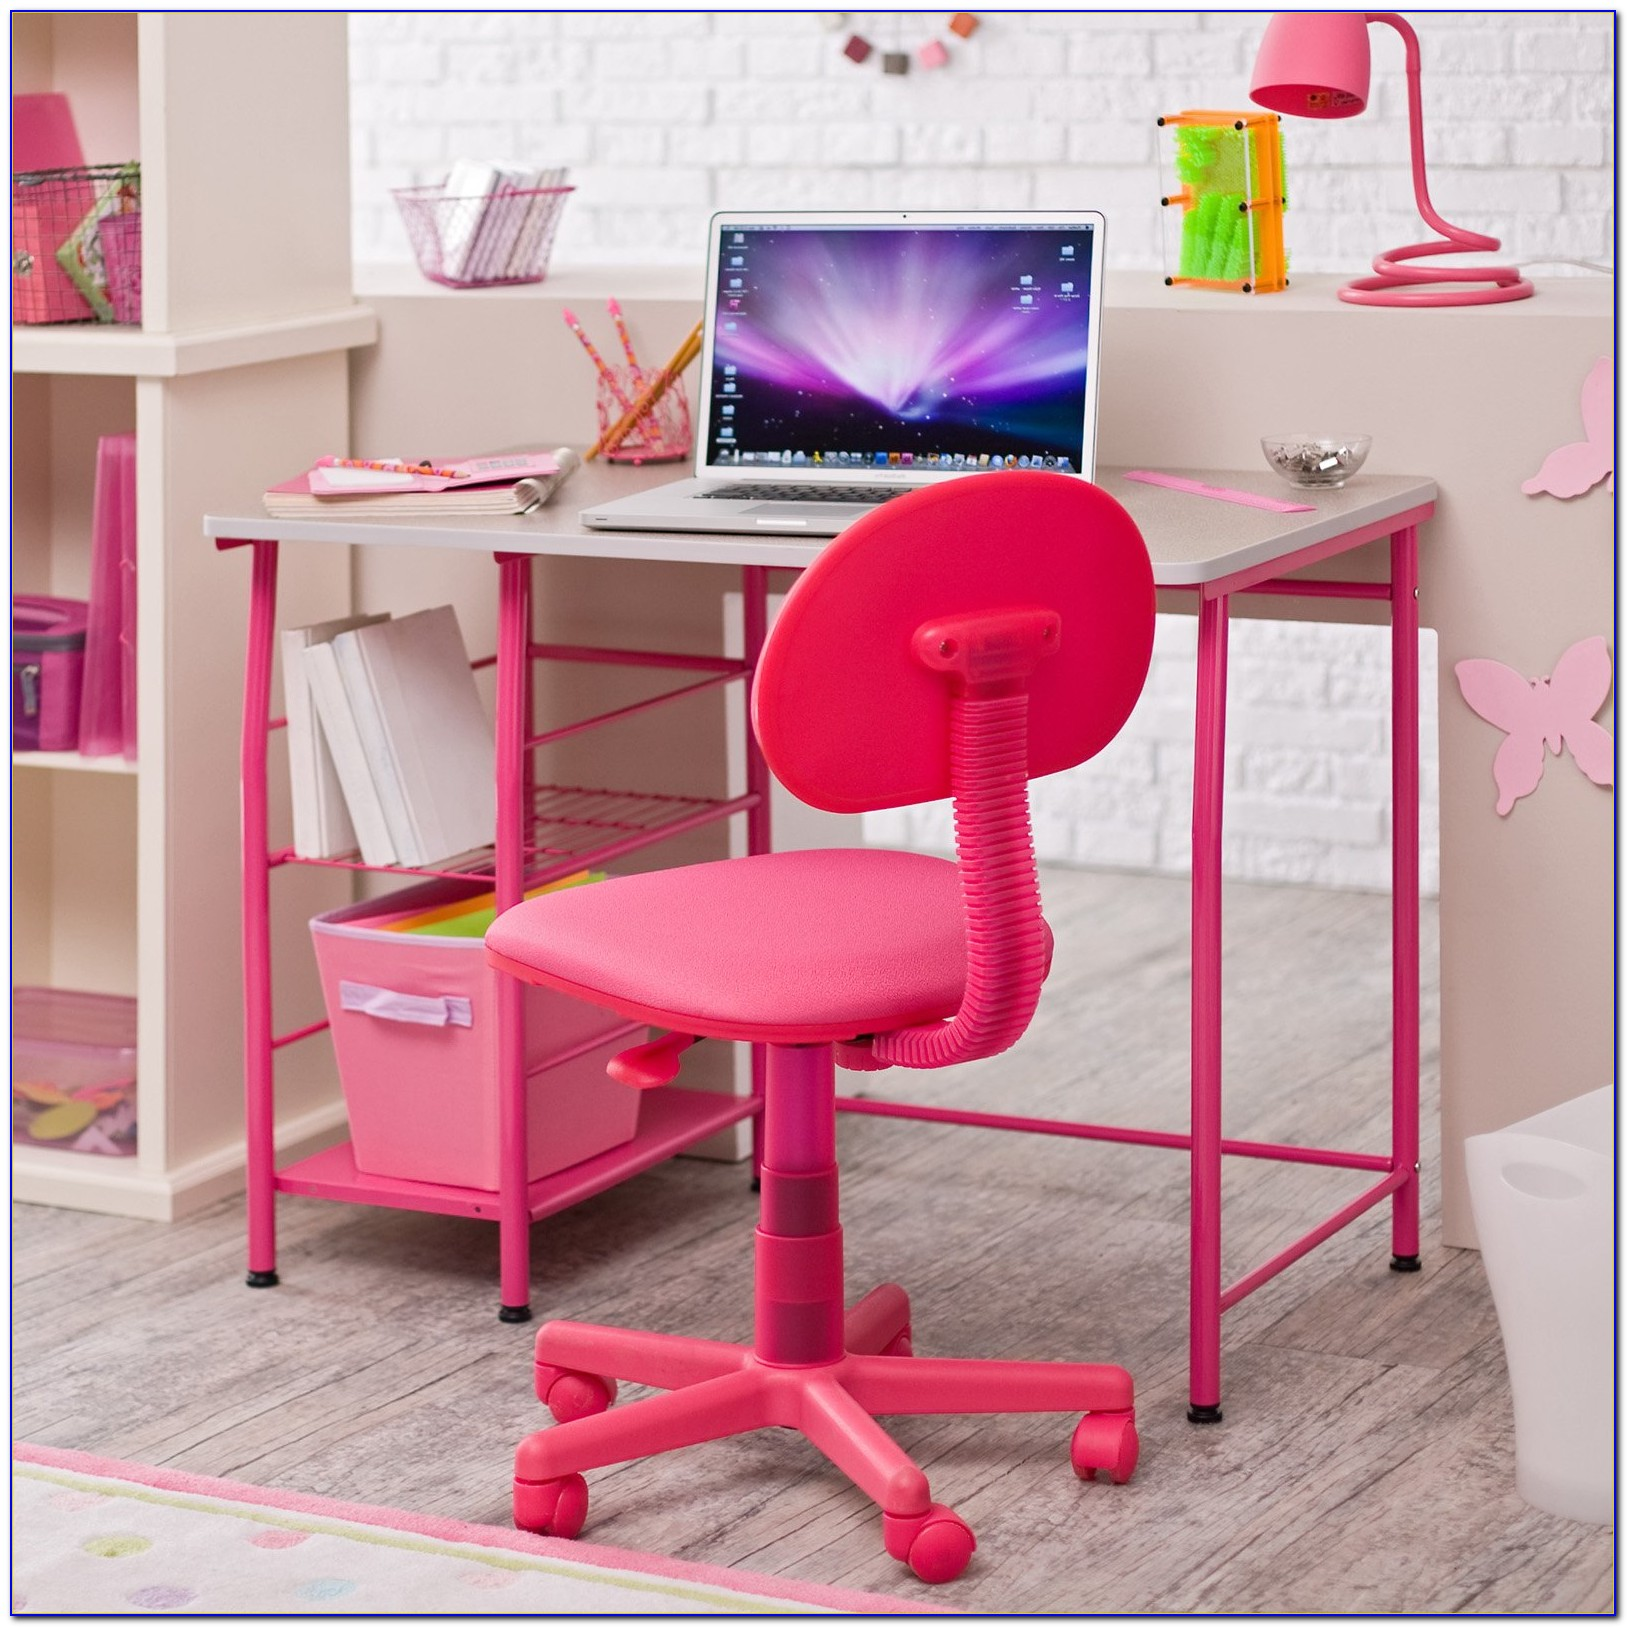 Children's Activity Desk And Chair Set